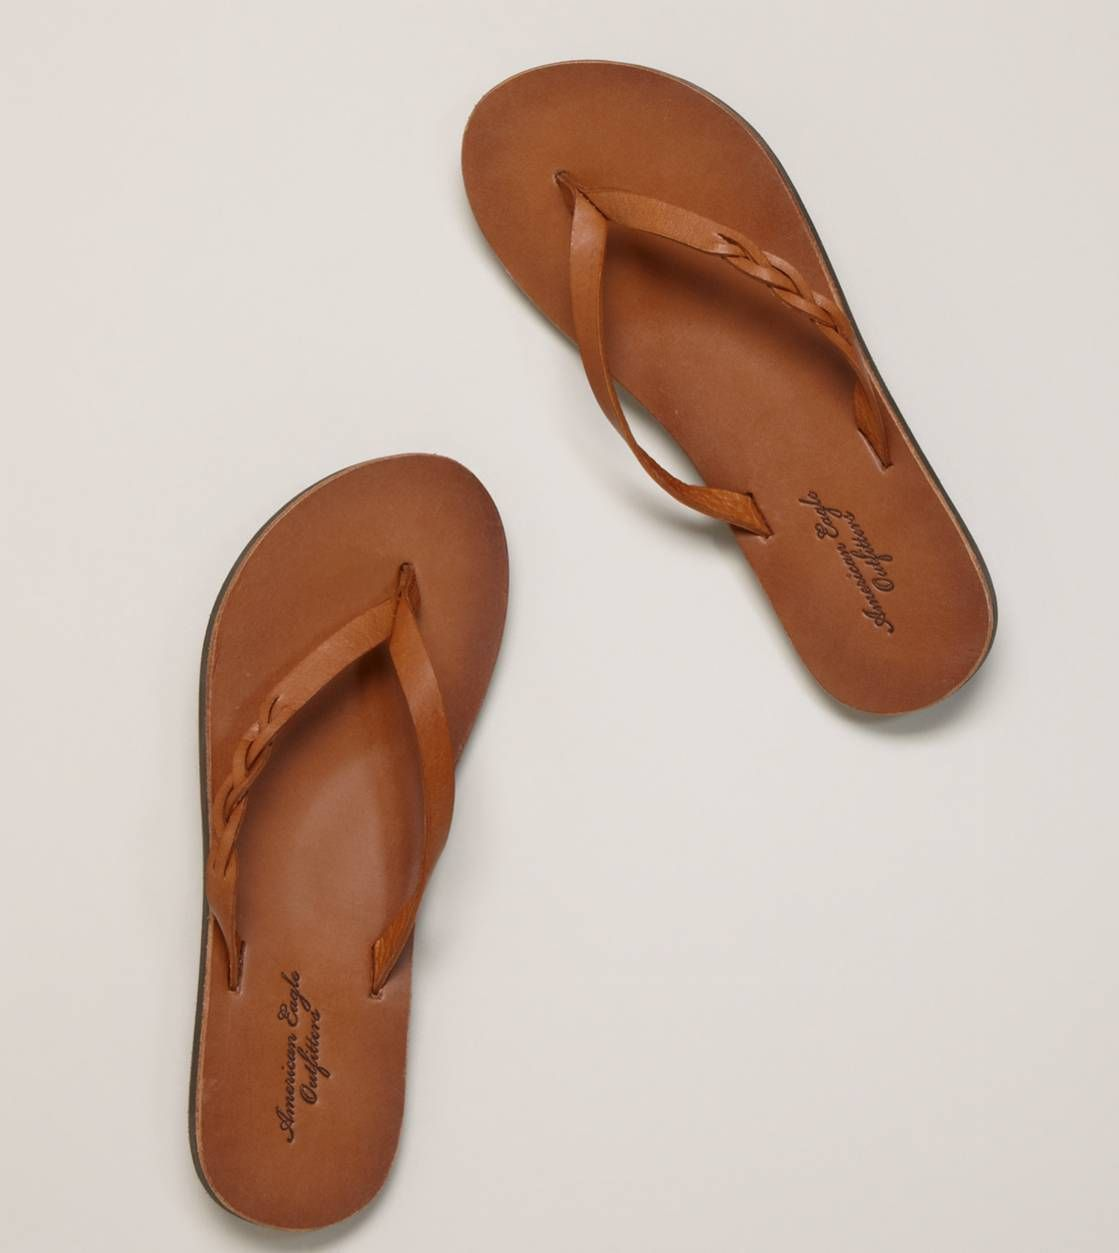 a940435a90f566 AE best flip flops! so comfy! Just got two pair ... it s buy one get a pair  50% off!